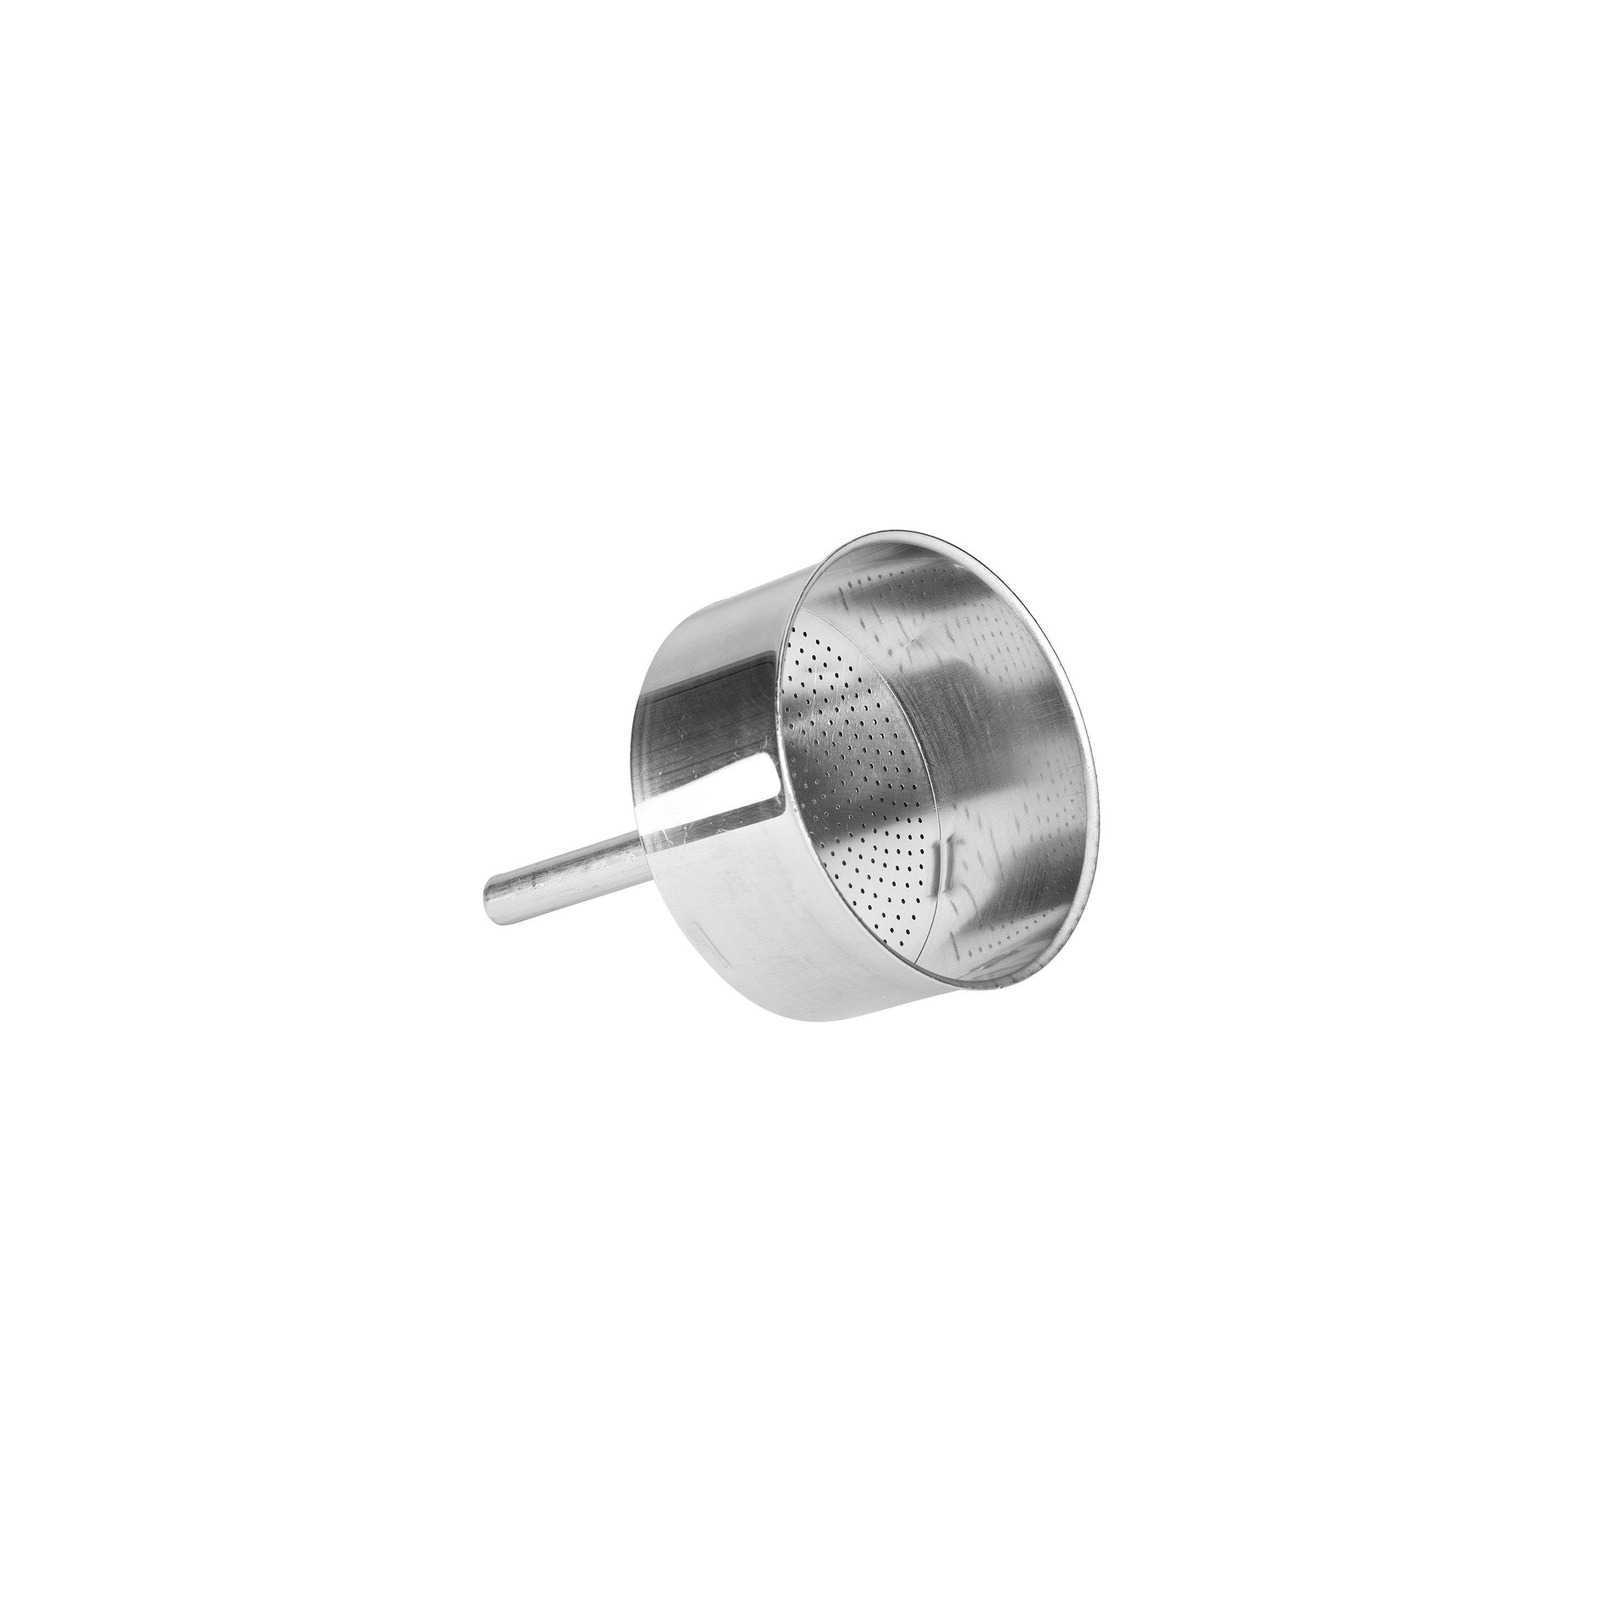 Bialetti Replacement Funnel 4 Cups